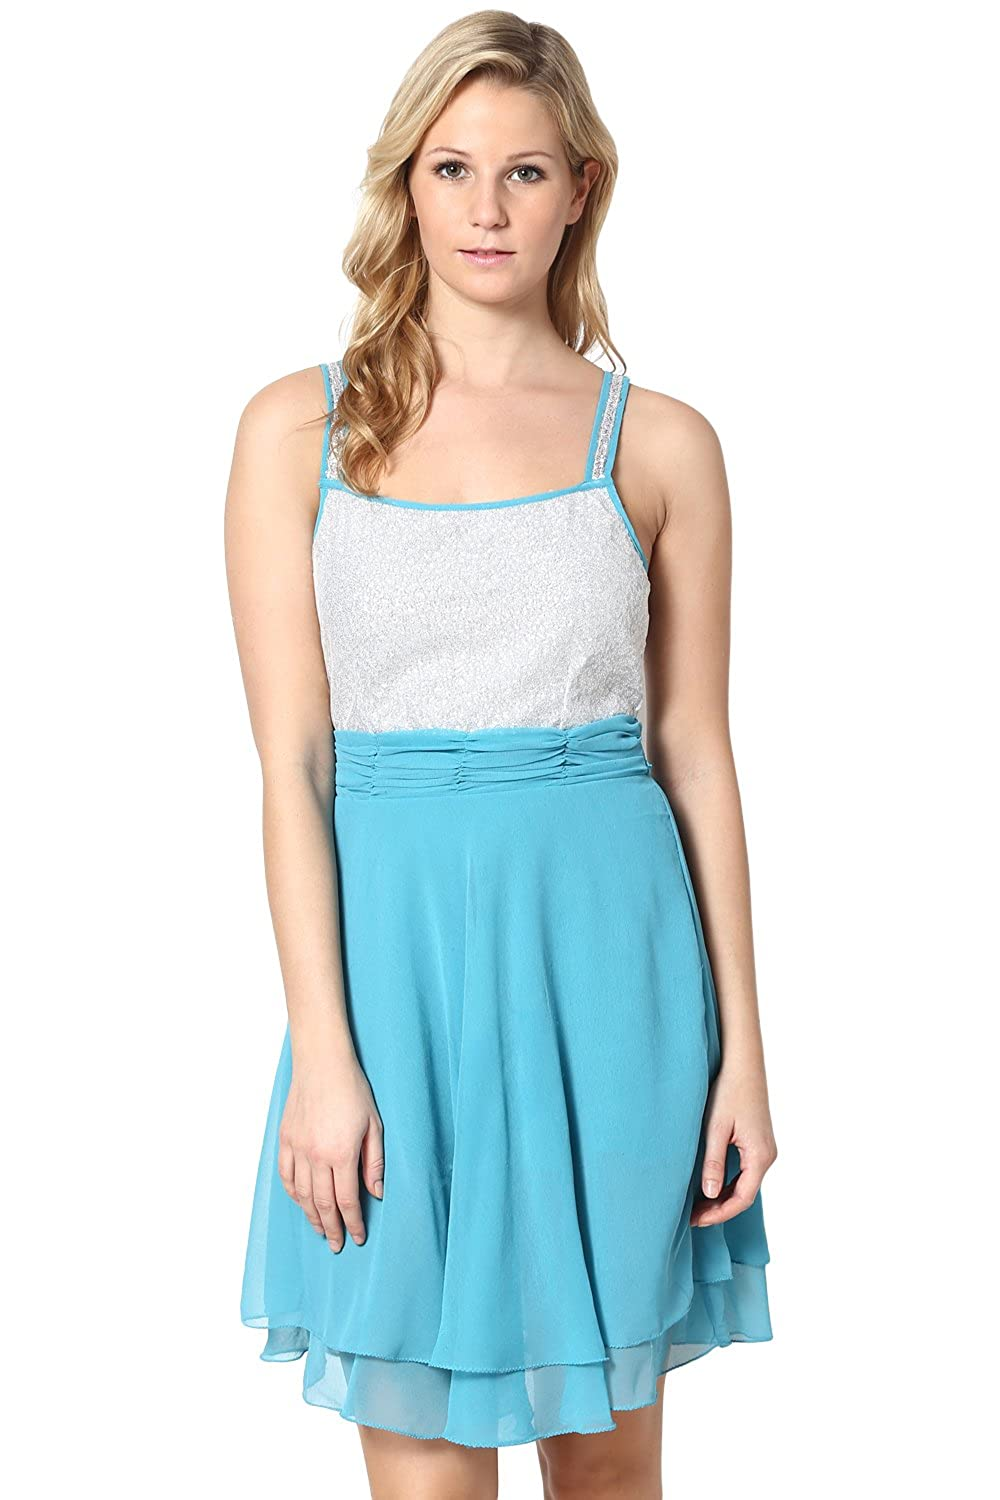 The Vanca Women's Causal Wear Dress